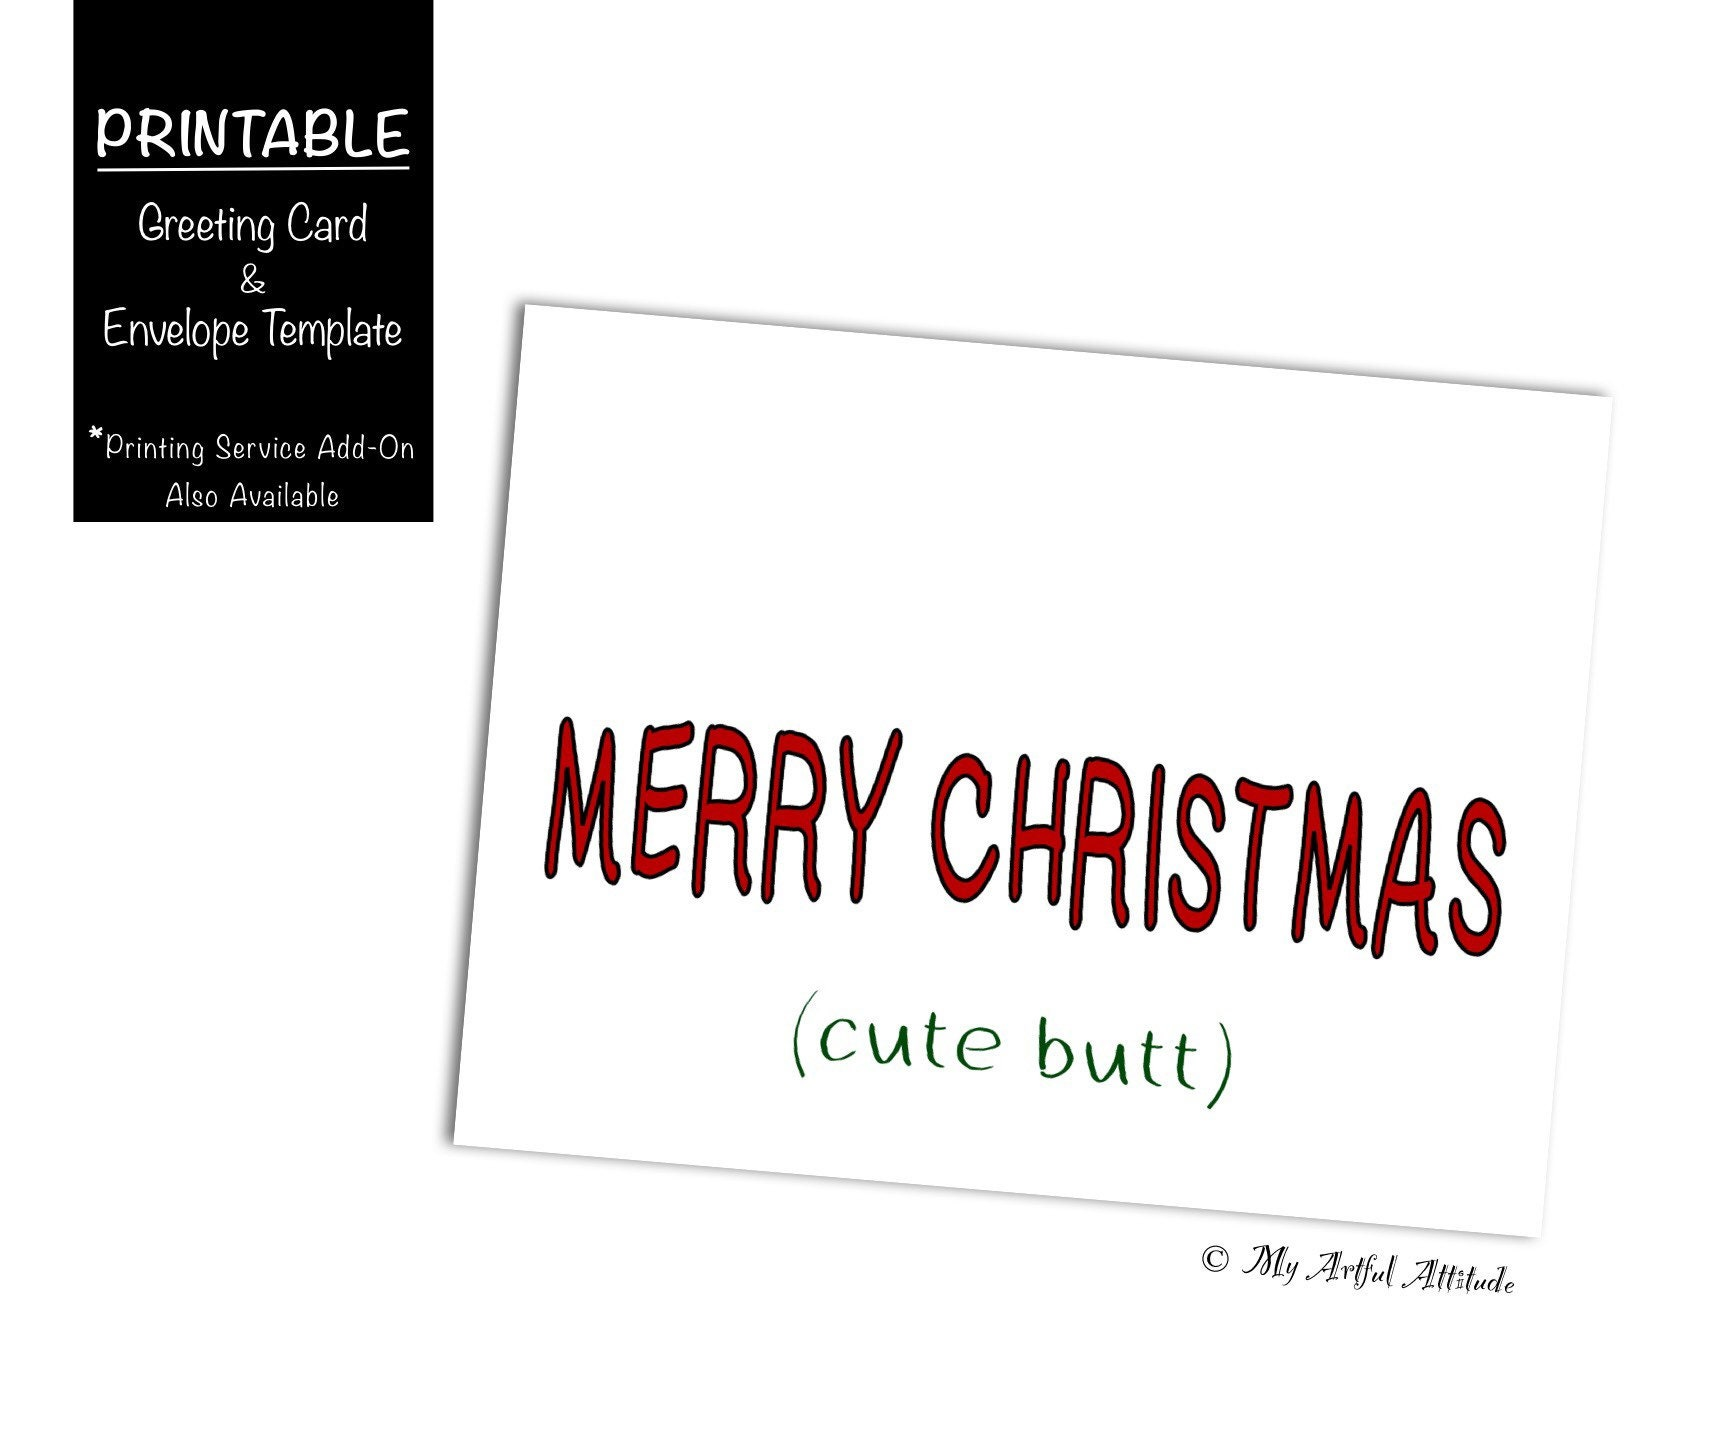 Christmas Card PRINTABLE Girlfriend Cute Butt Merry | Etsy